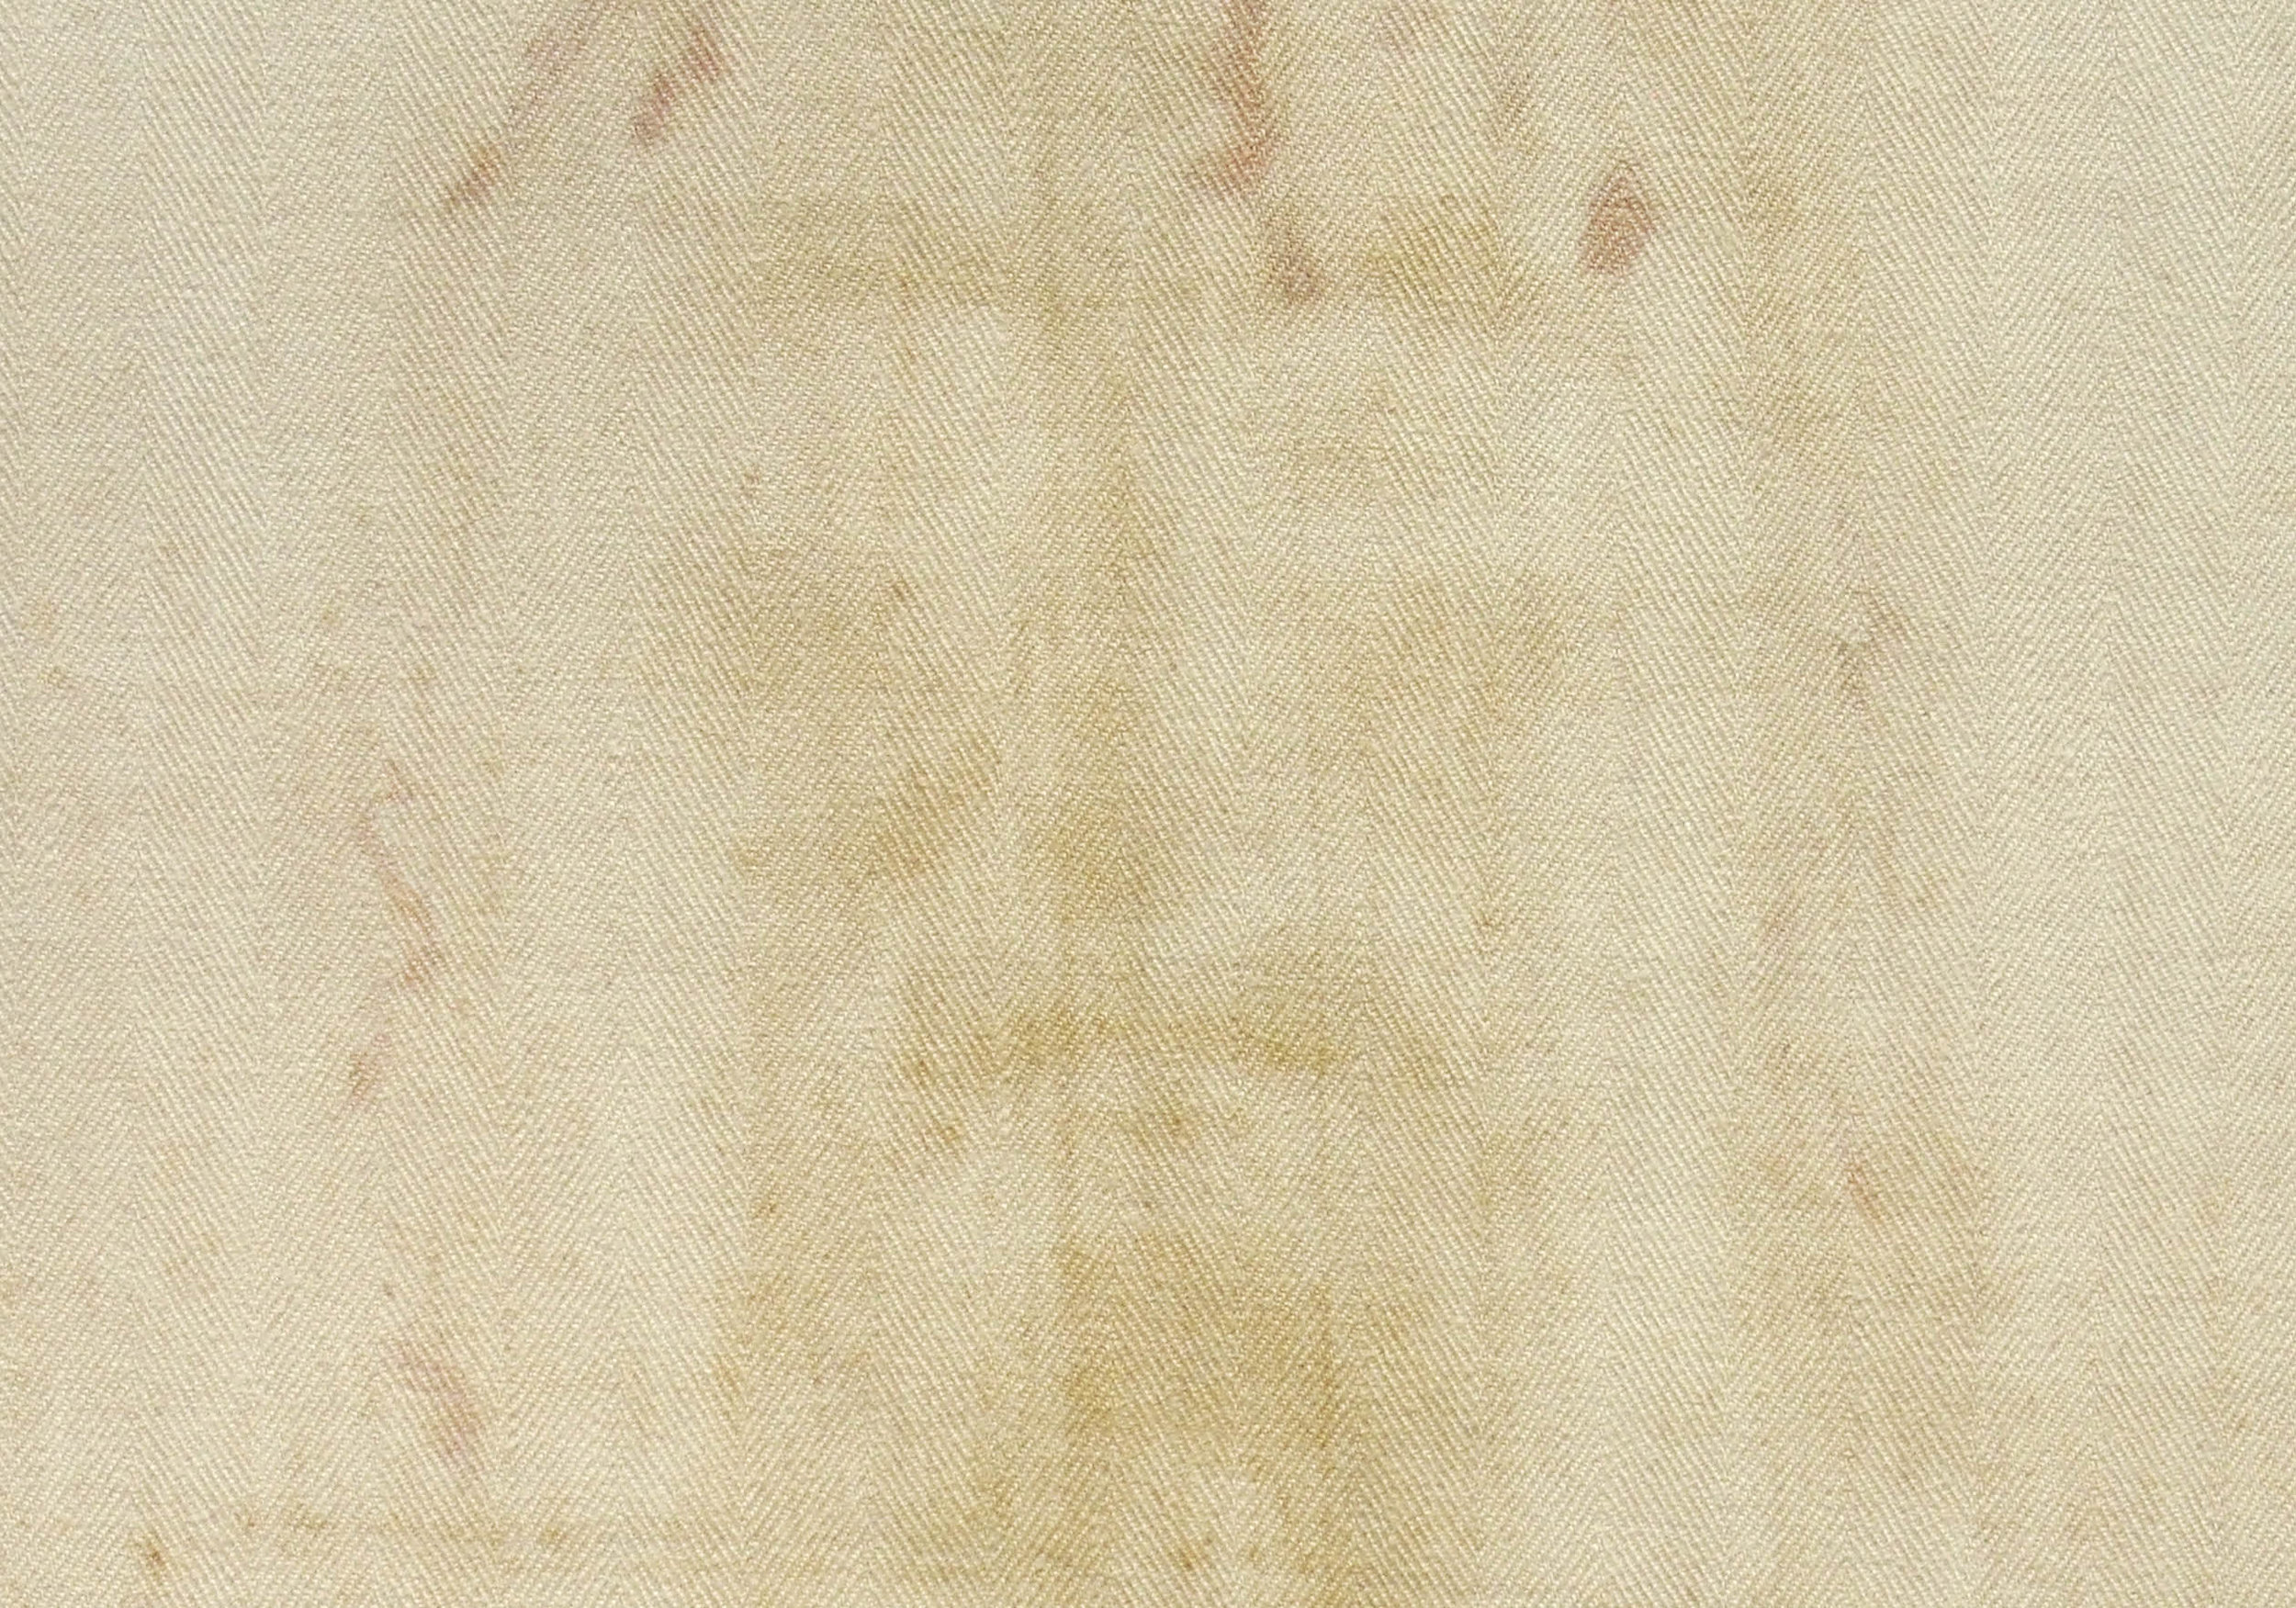 Shroud of Turin Blood Sweat Analysis